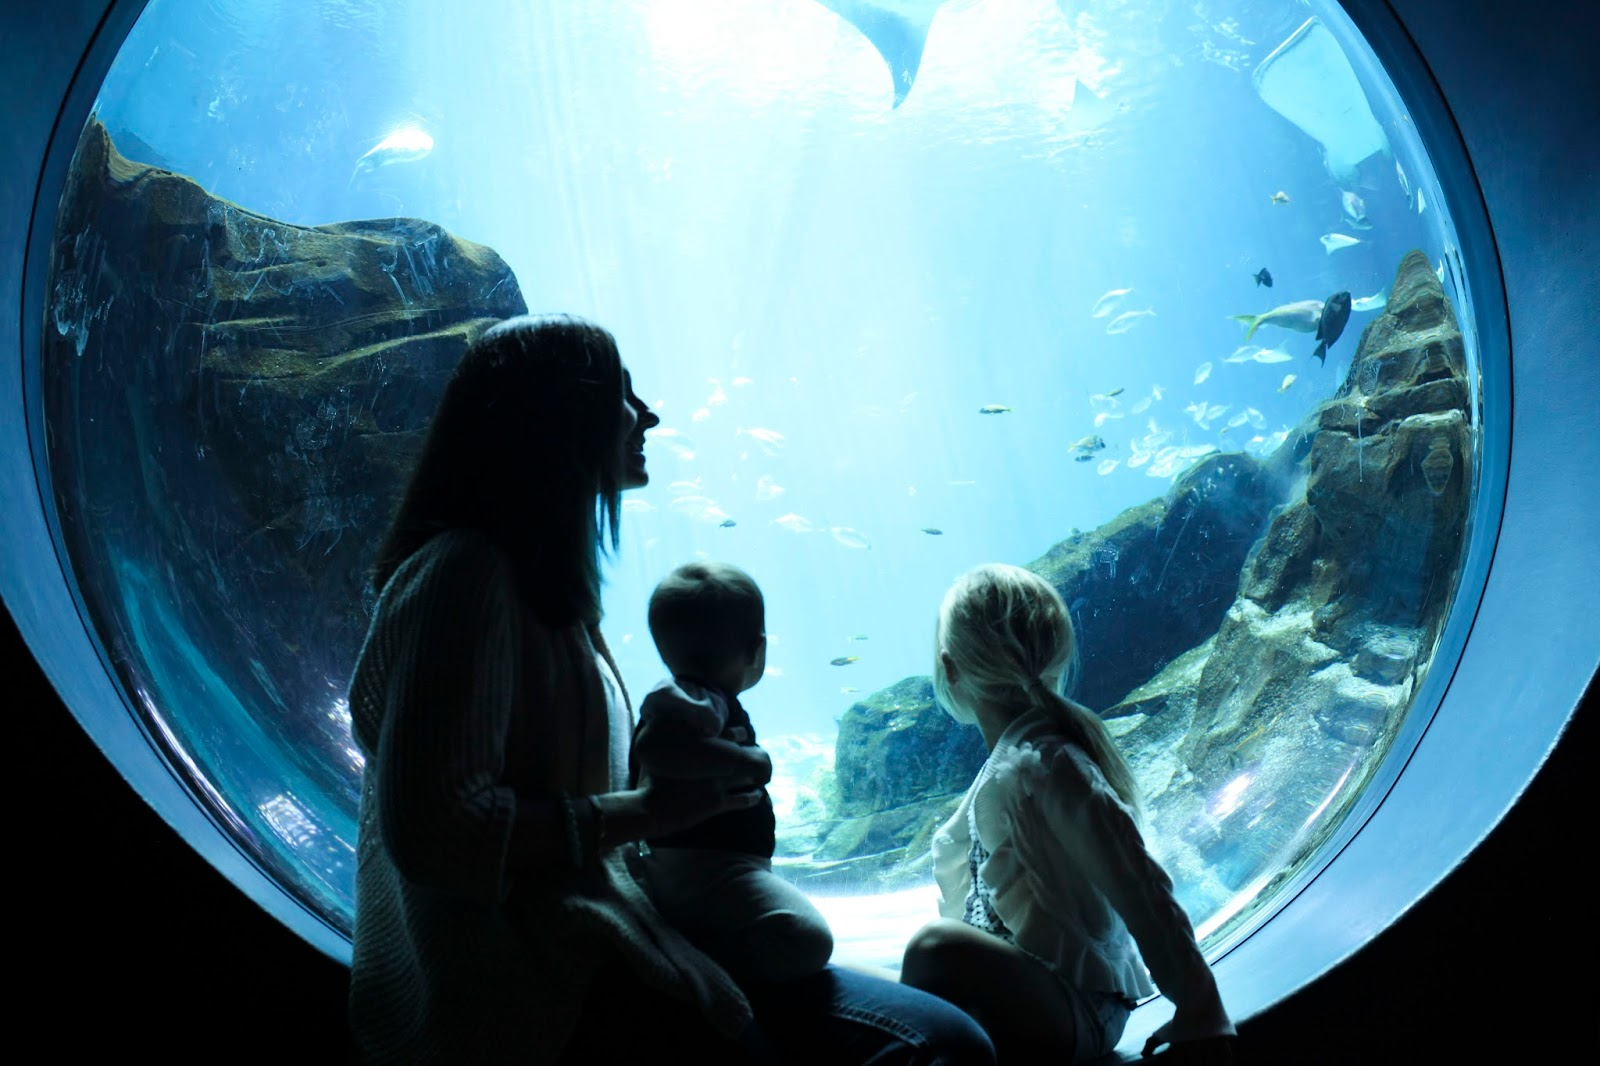 Amy West and daughters enjoy underwater view in the Georgia Aquarium